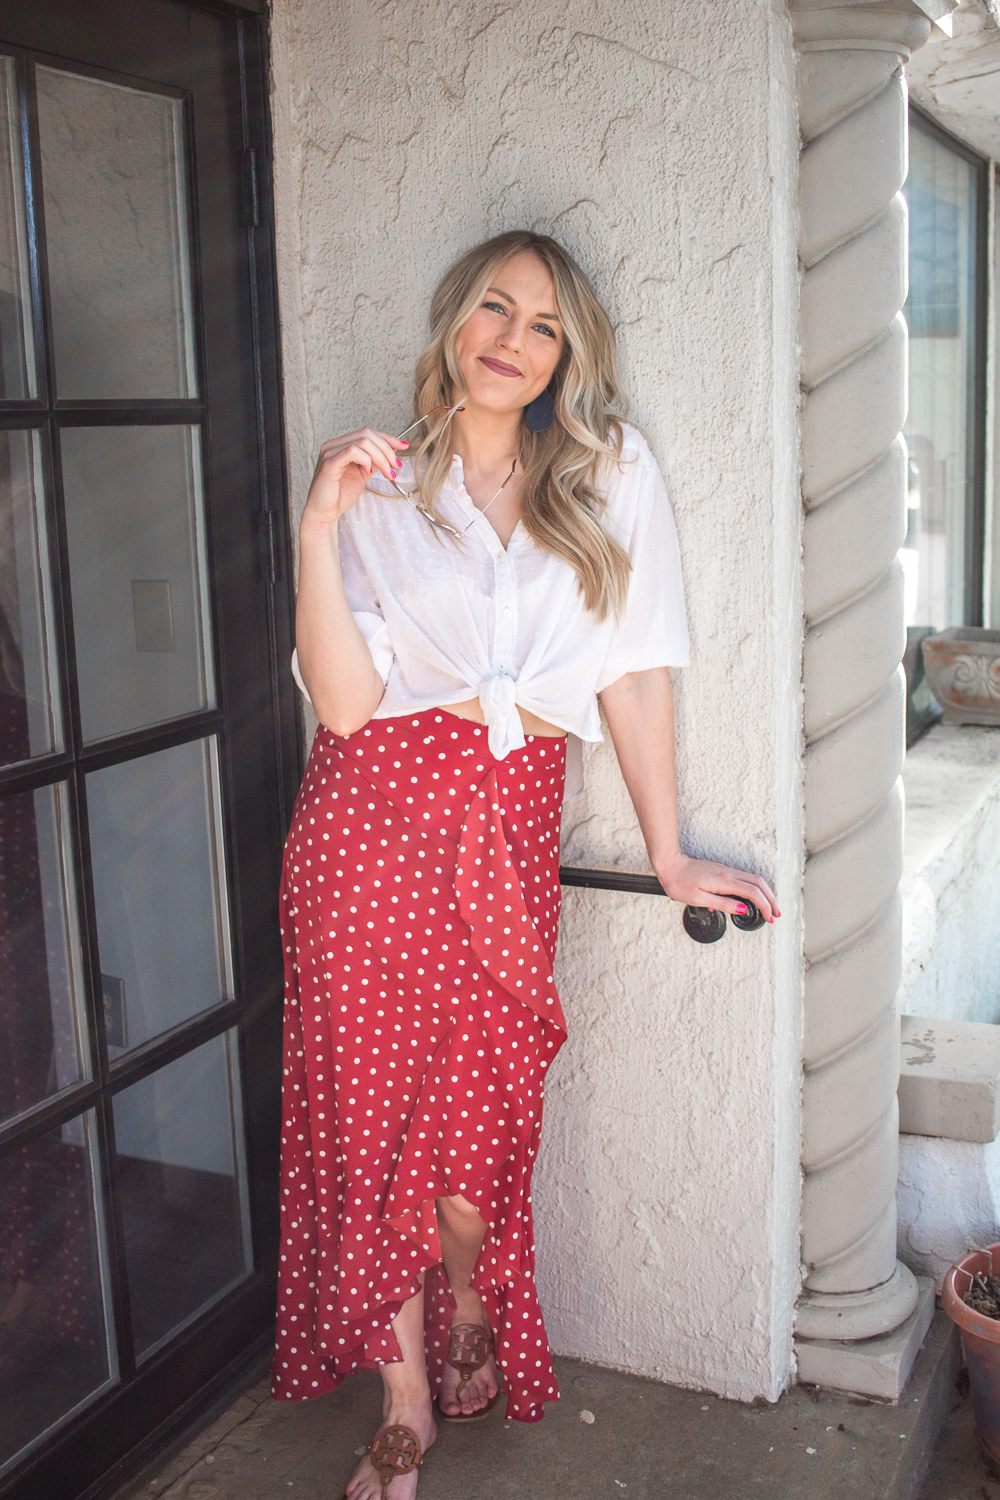 polka dot skirt and button down shirt